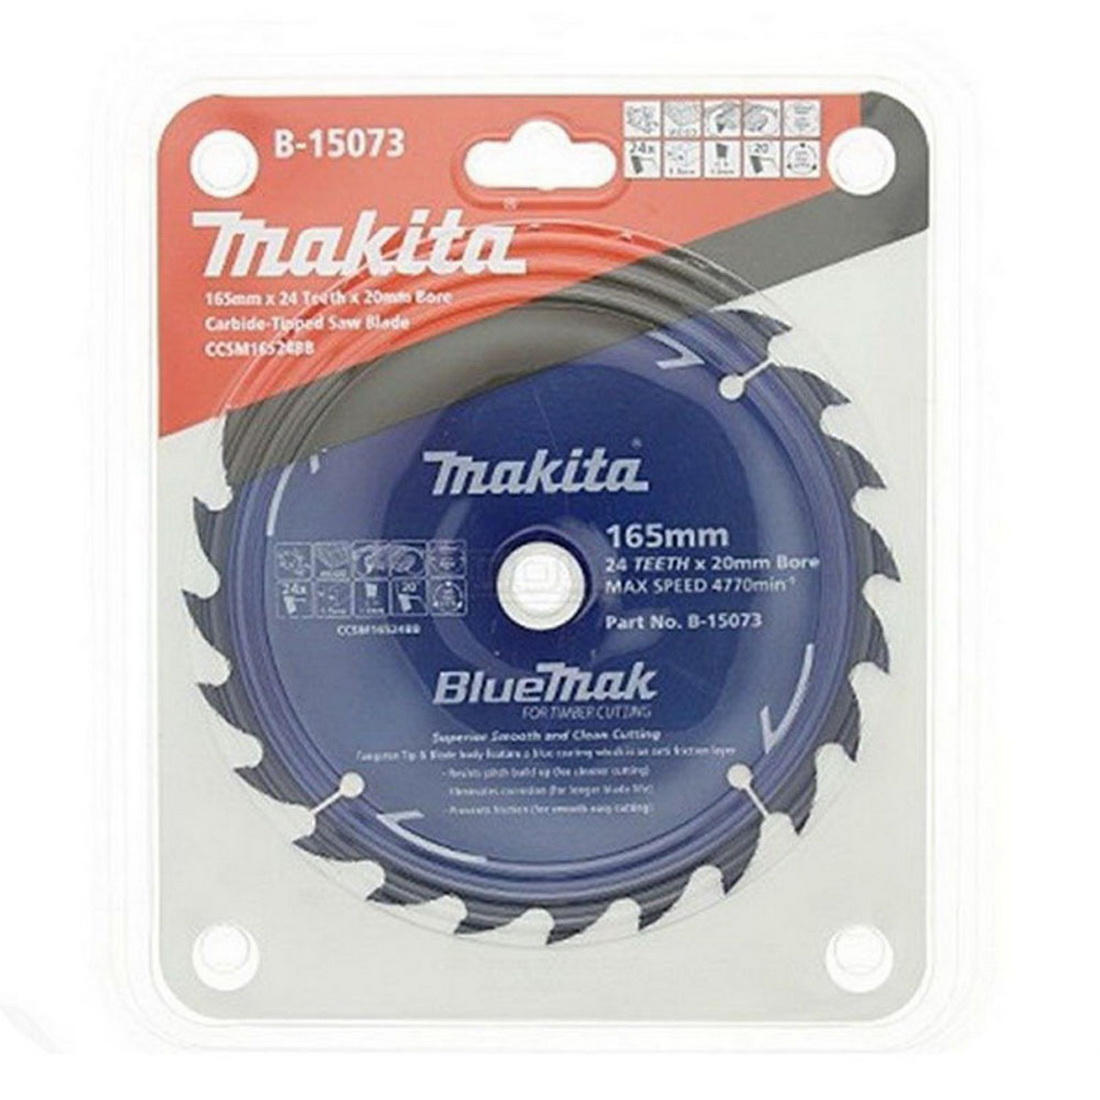 Bluemak 165 x 20mm 24TPI Cordless Circular Saw Blade Tungsten Carbide